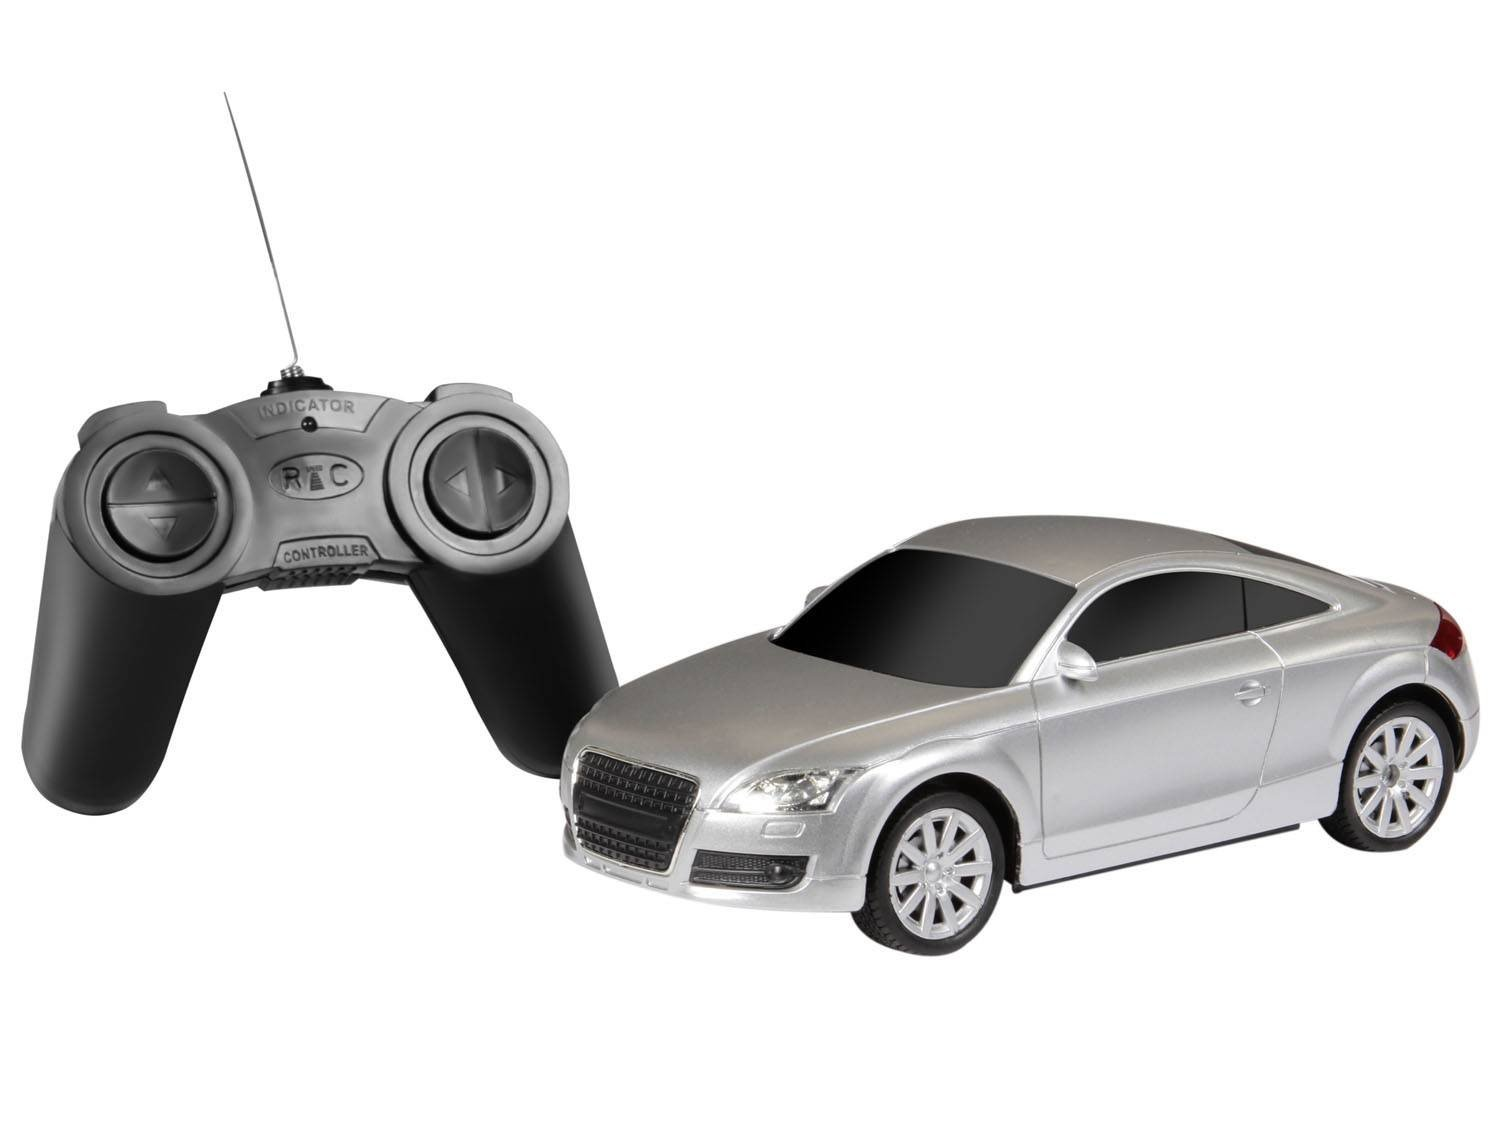 Famous car com controle remoto 1 24 homeplay carro for Homeplay